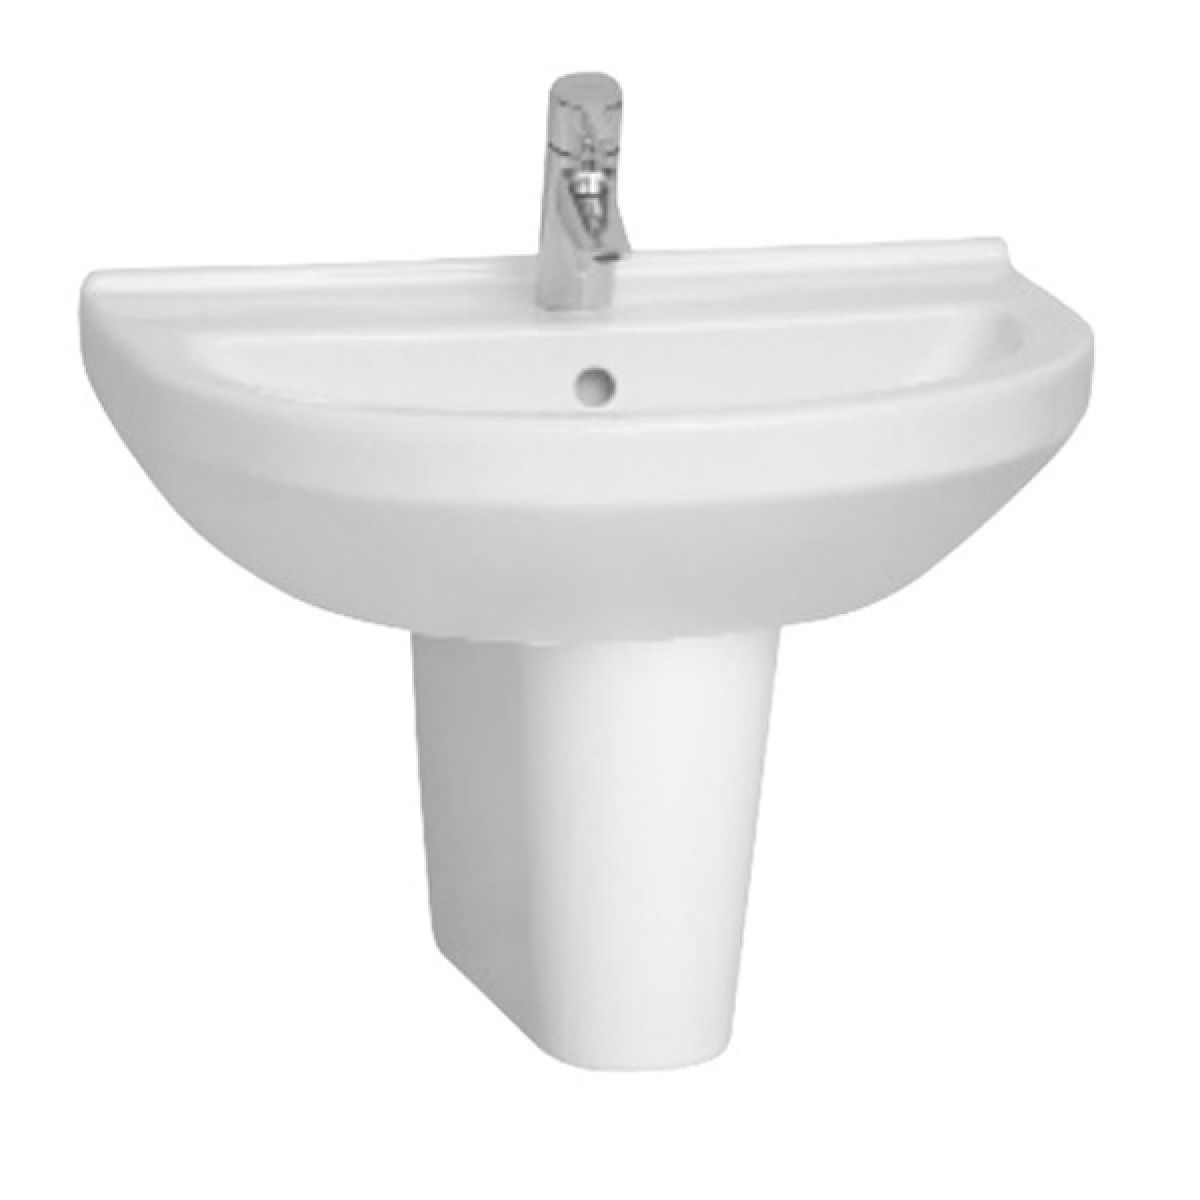 Vitra S50 1 Tap Hole Round Basin with Semi Pedestal 600mm